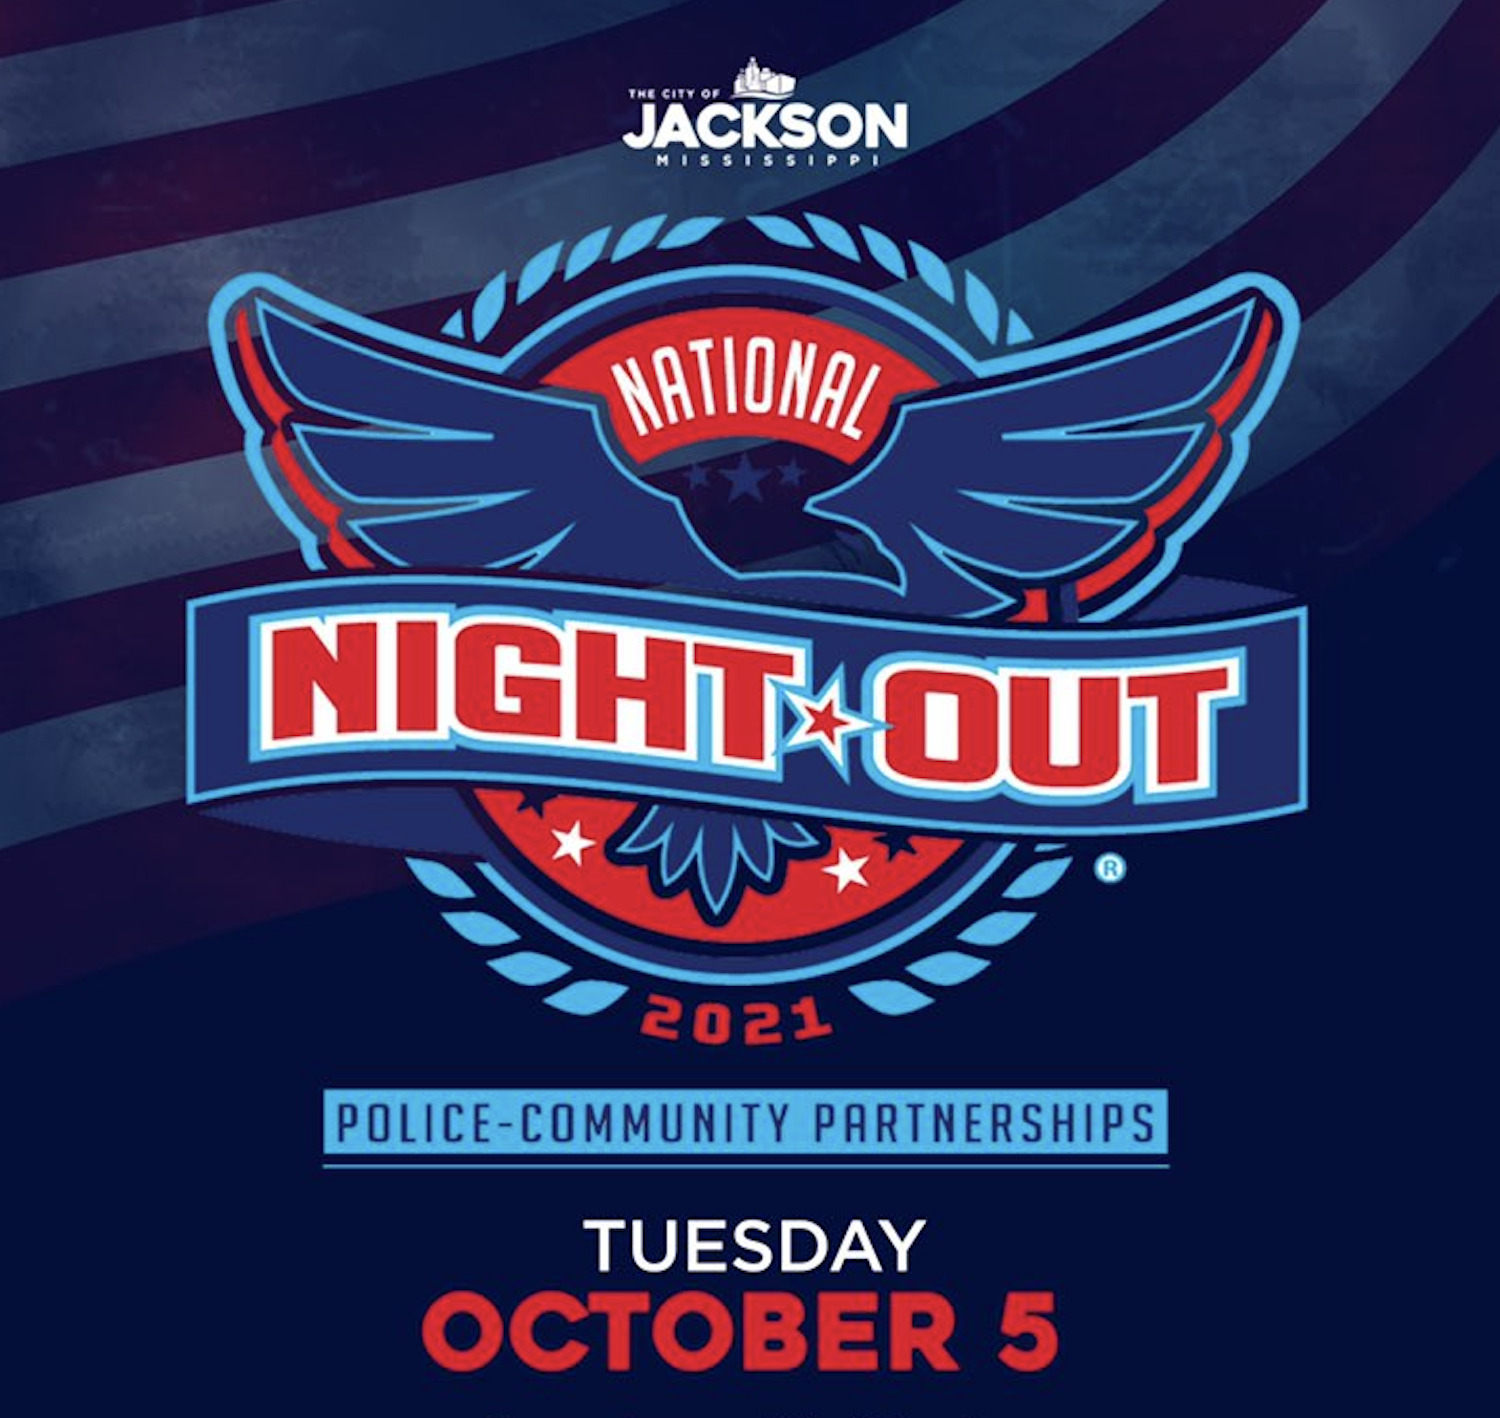 National Night Out | Jackson Police Department